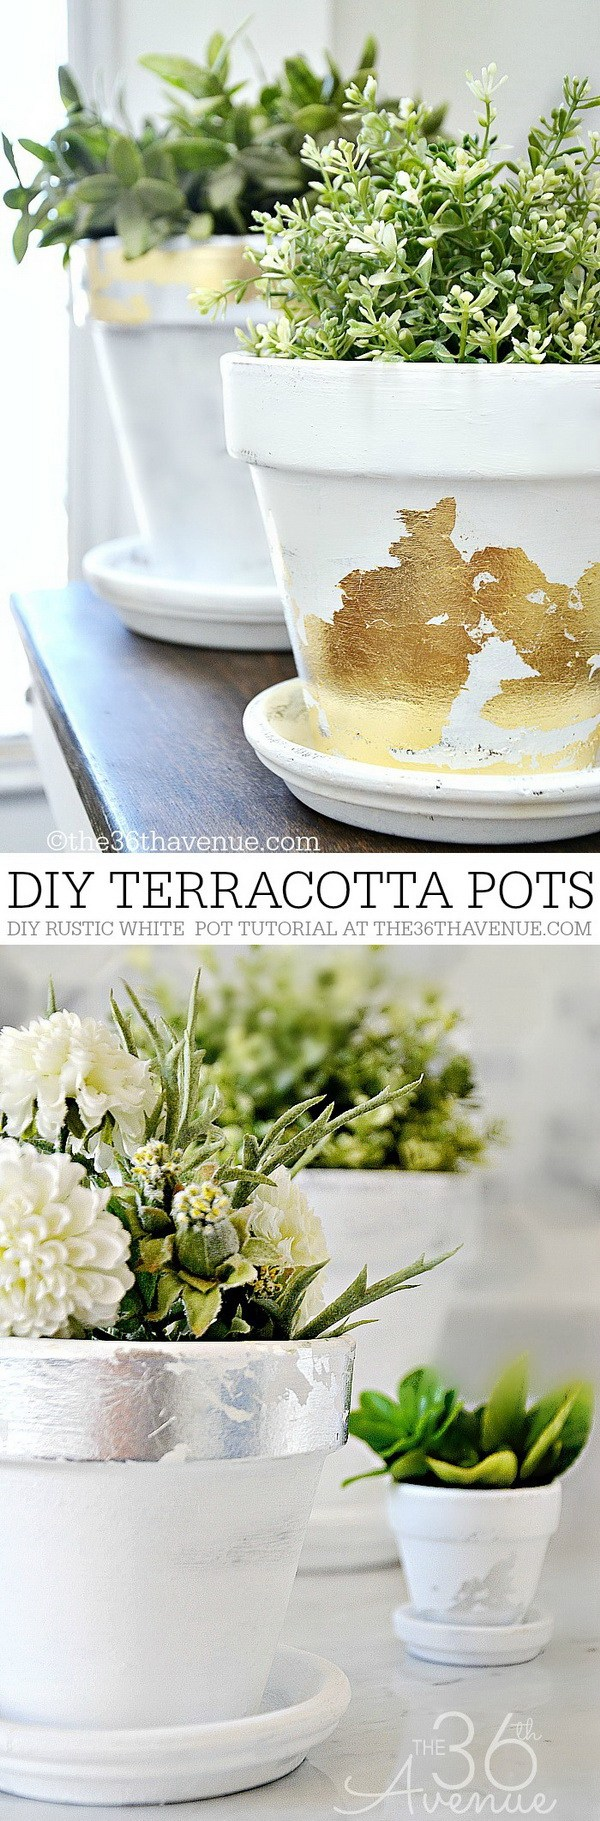 8-diy-ideas-to-decorate-with-terracotta-pots